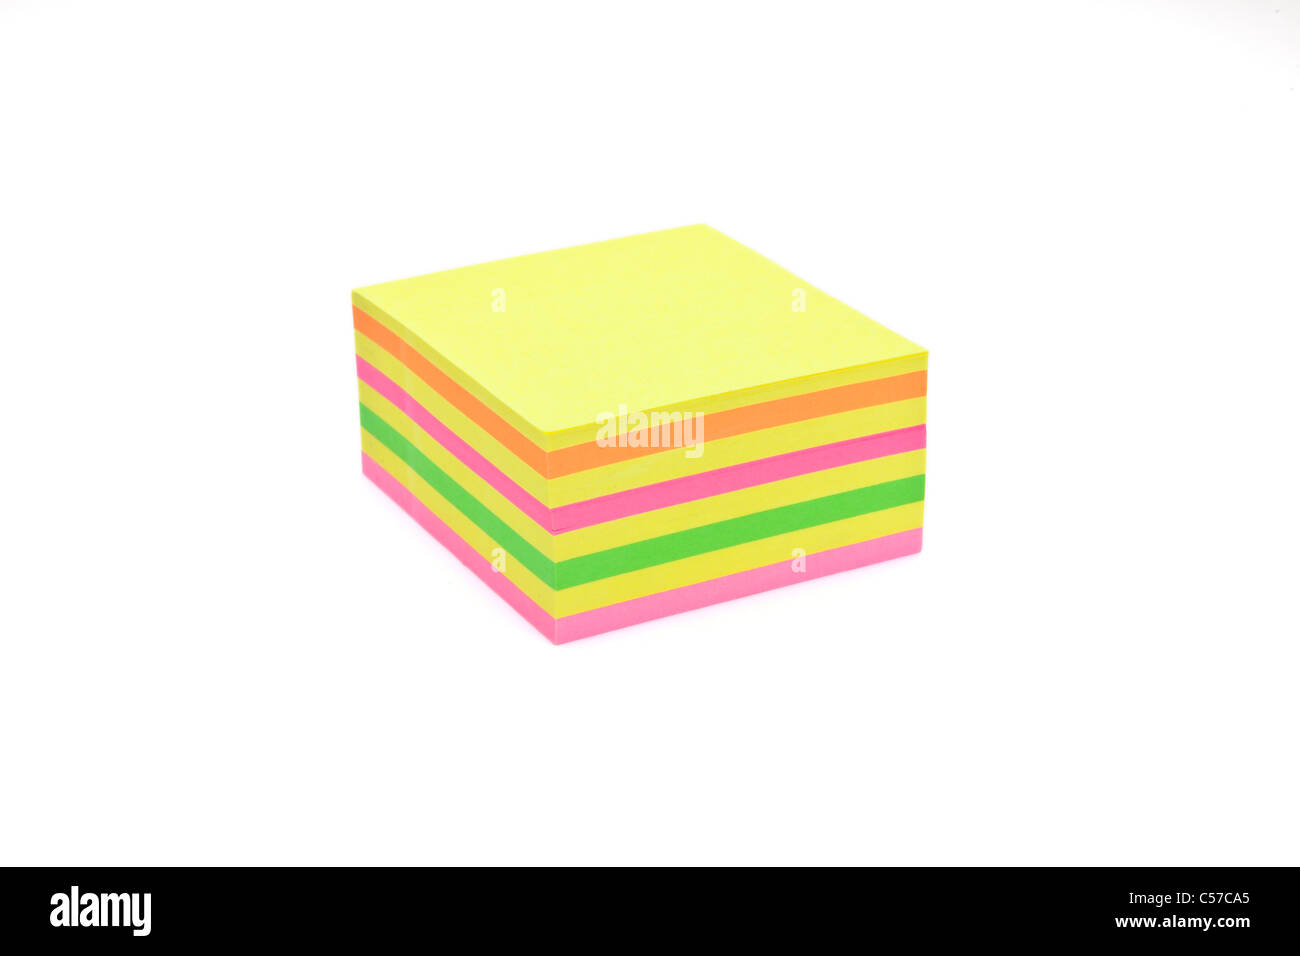 a square notepad in different colors - Stock Image